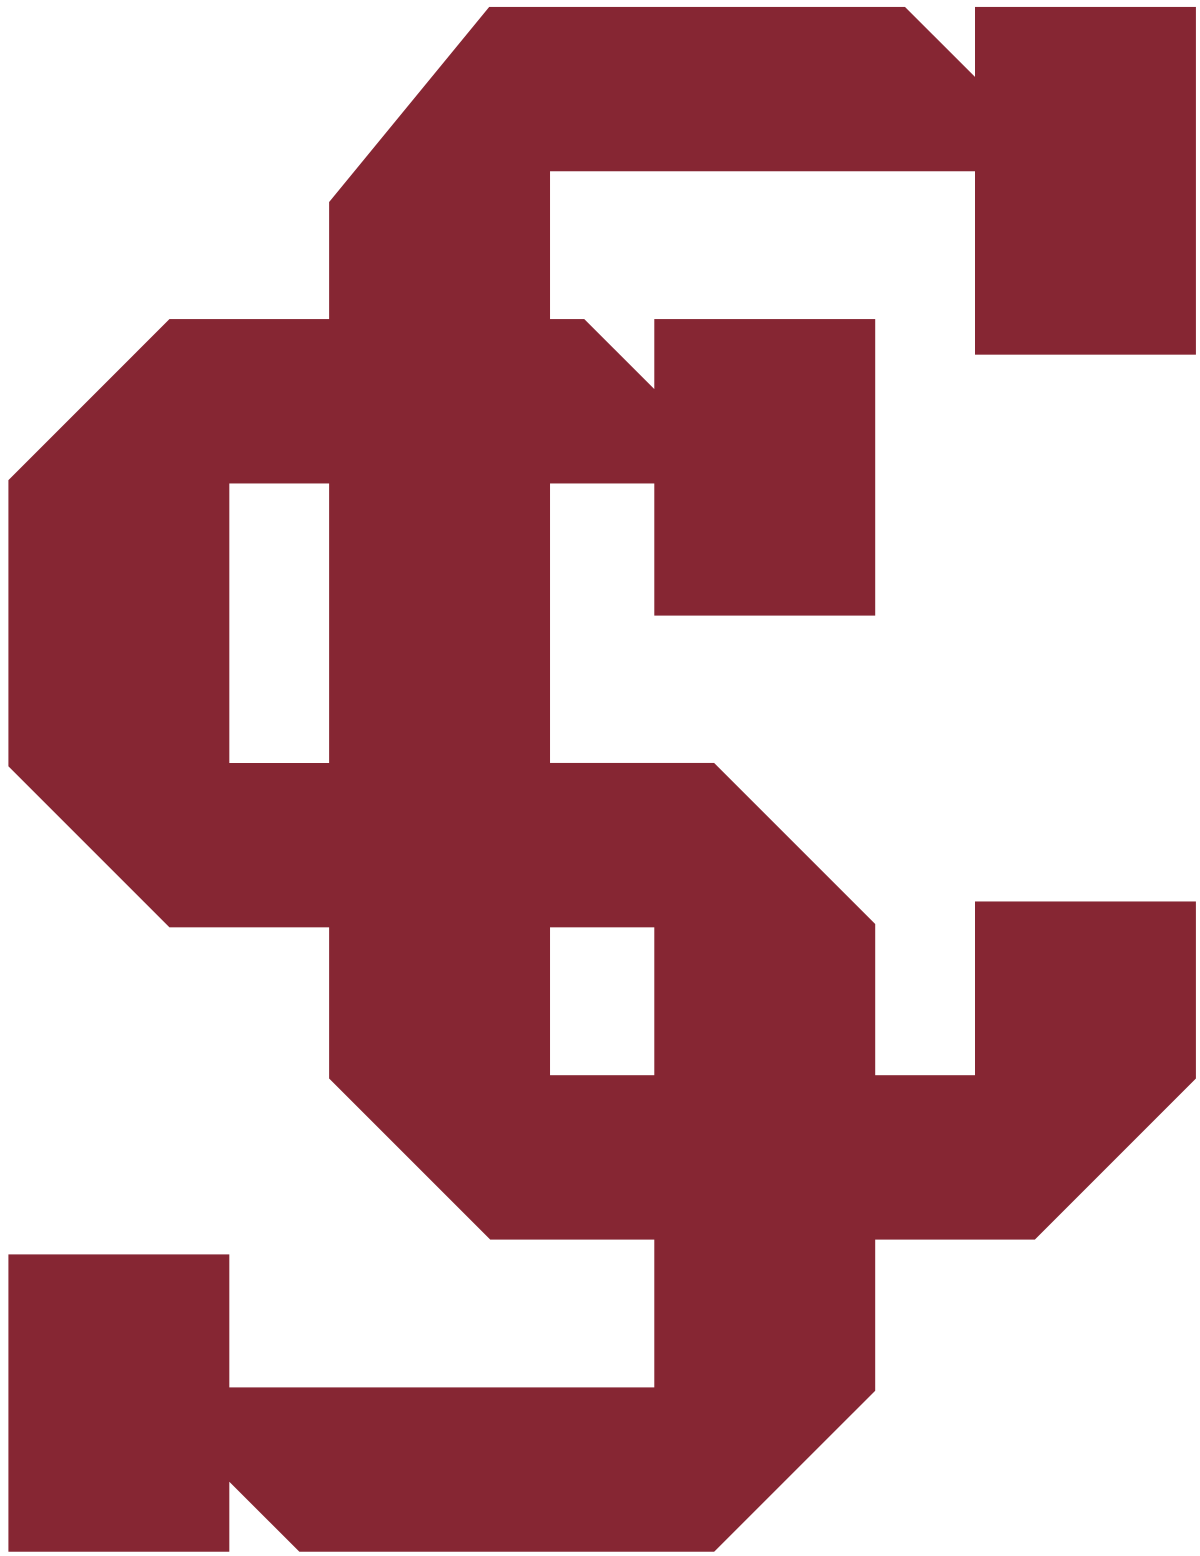 Basketball pavilion clipart svg library download Santa Clara Broncos men's basketball - Wikipedia svg library download